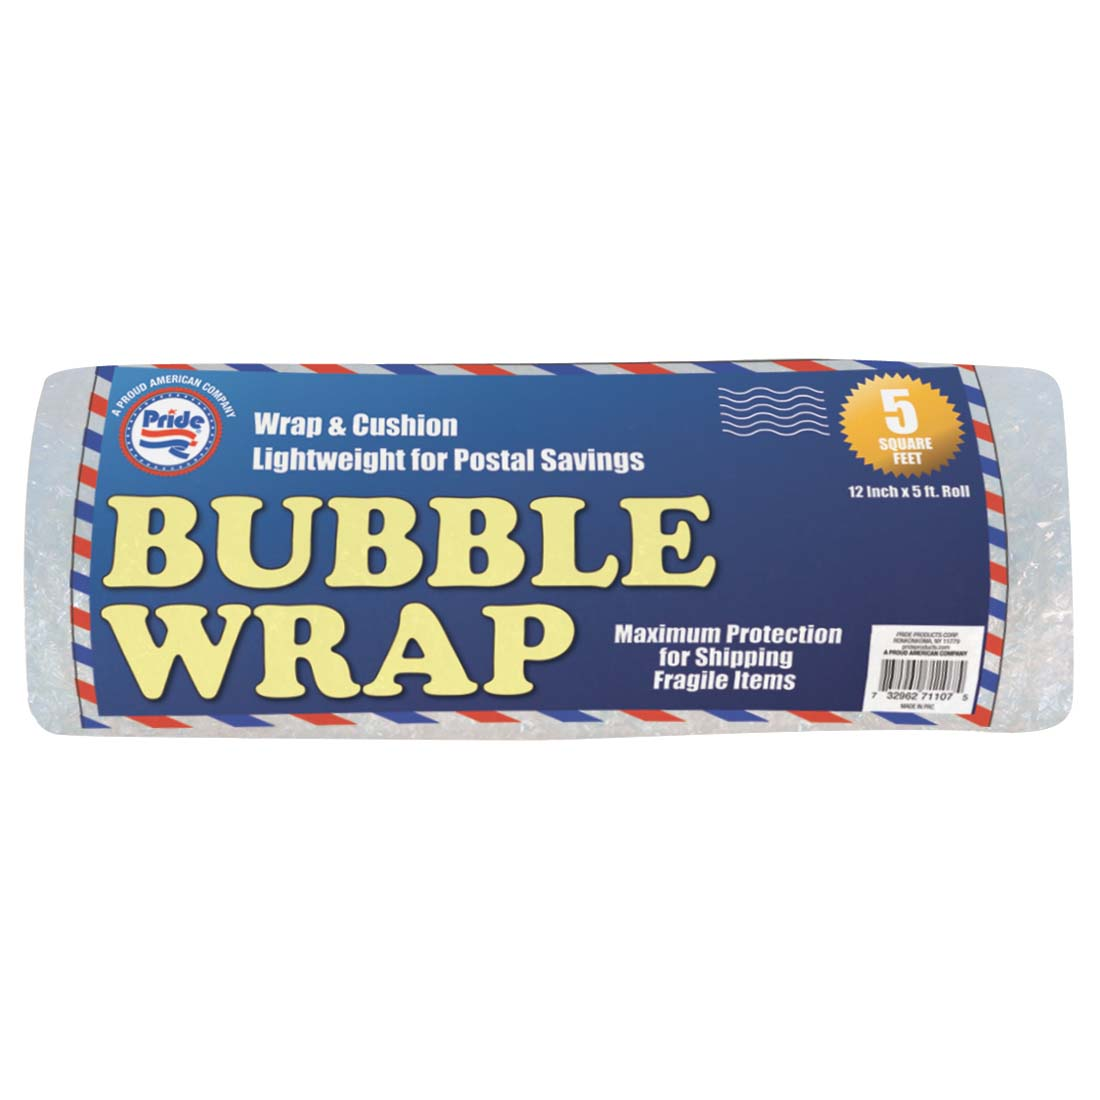 View BUBBLE WRAP ROLL 12 INCH X 5 FEET PERFORATED